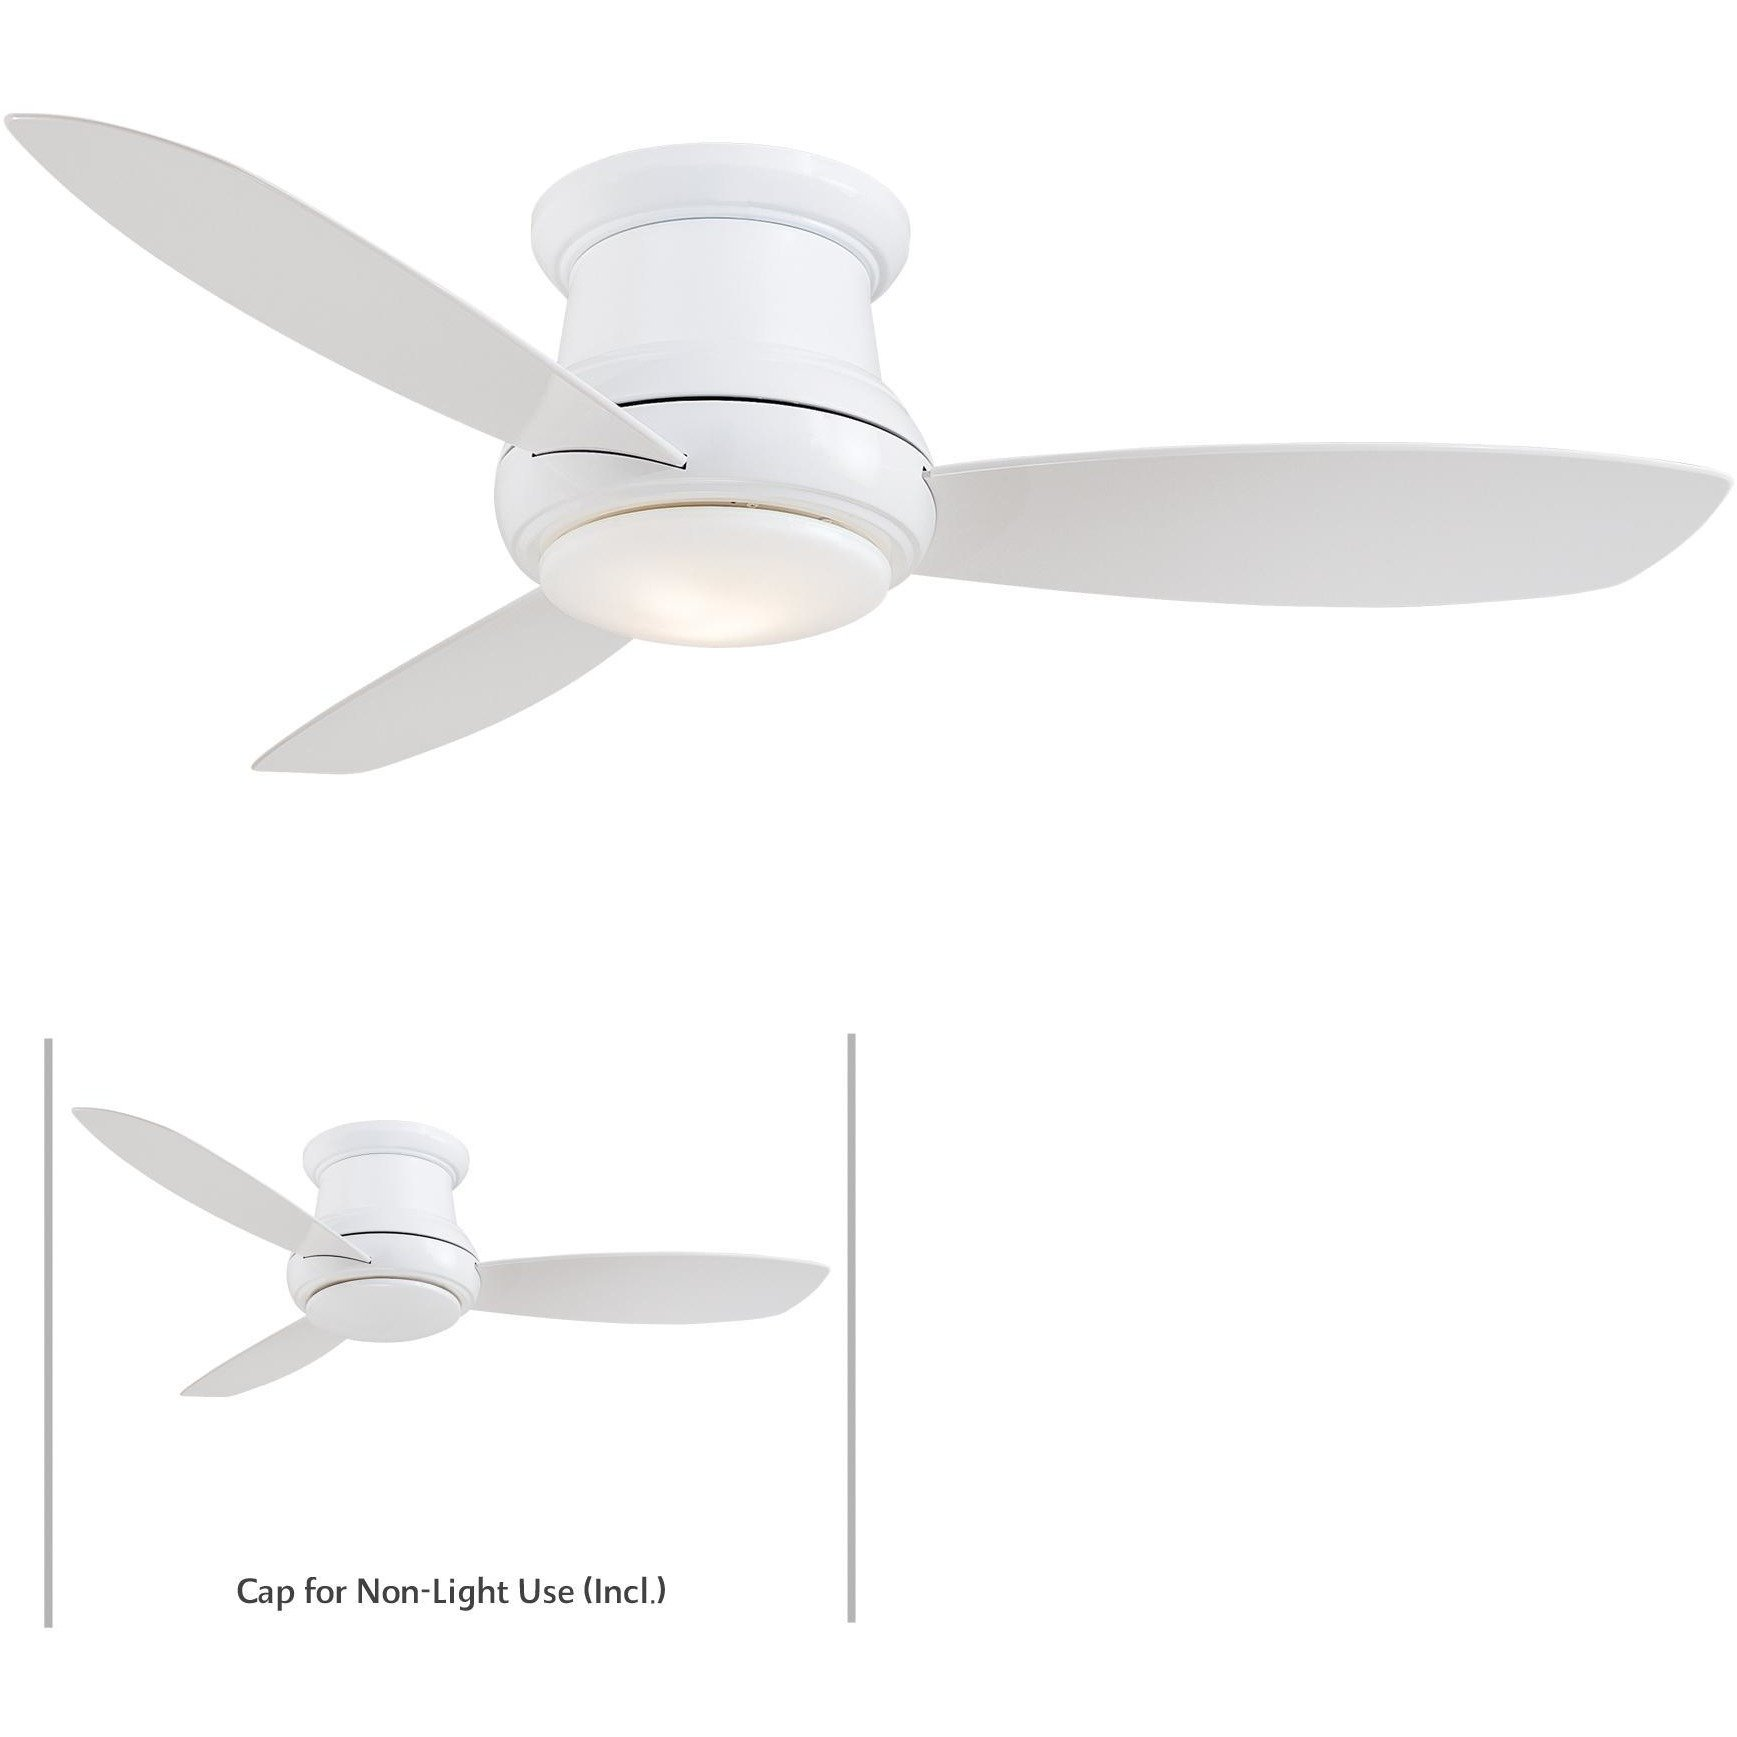 Minka Aire Concept Ii 52 In Integrated Led Indoor White Ceiling Fan With Remote Ceiling Fan With Remote Ceiling Fan Flush Mount Ceiling Fan